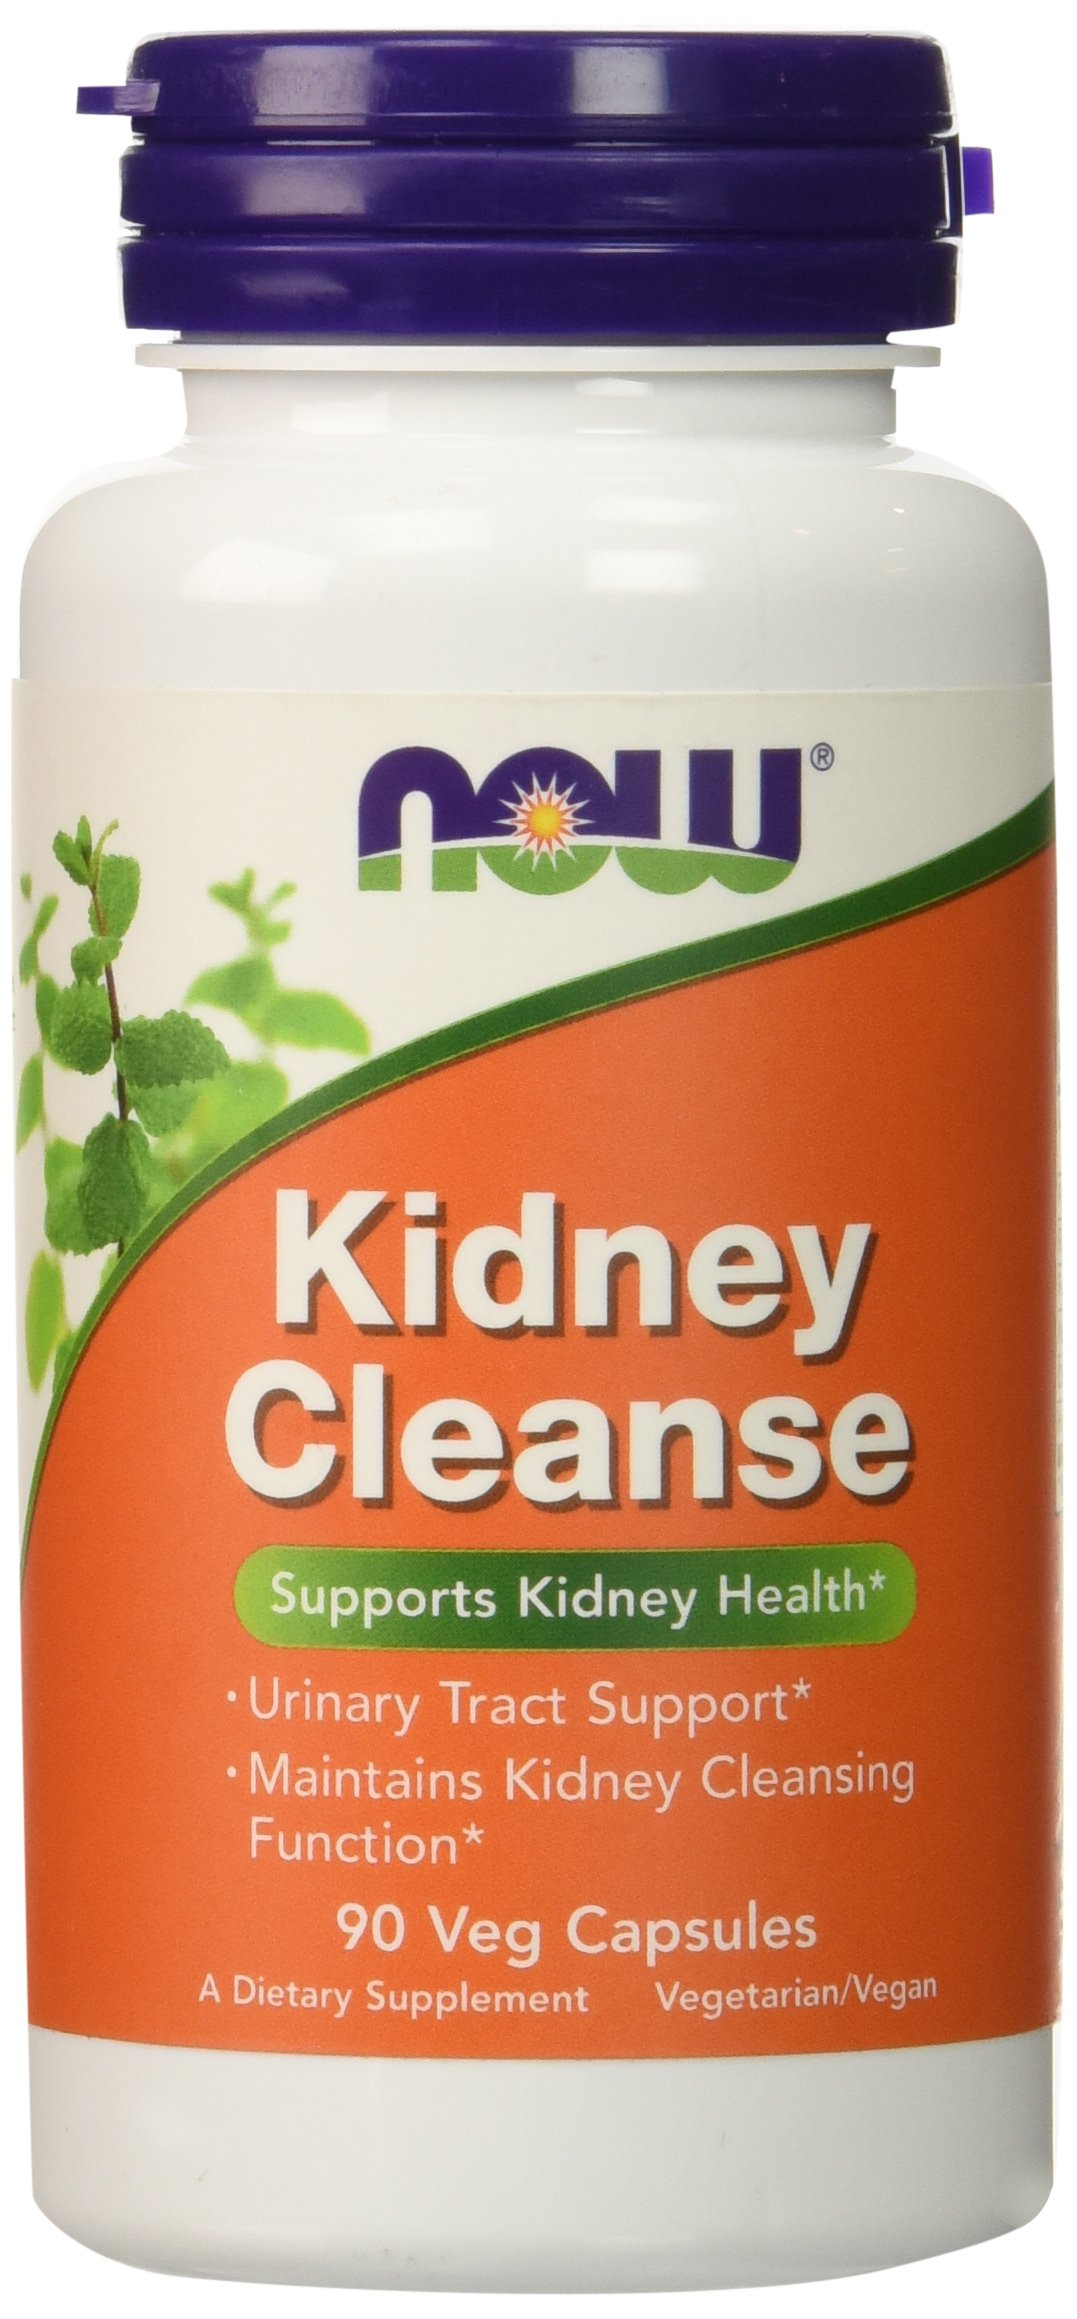 NOW Kidney Cleanse,90 Veg Capsules